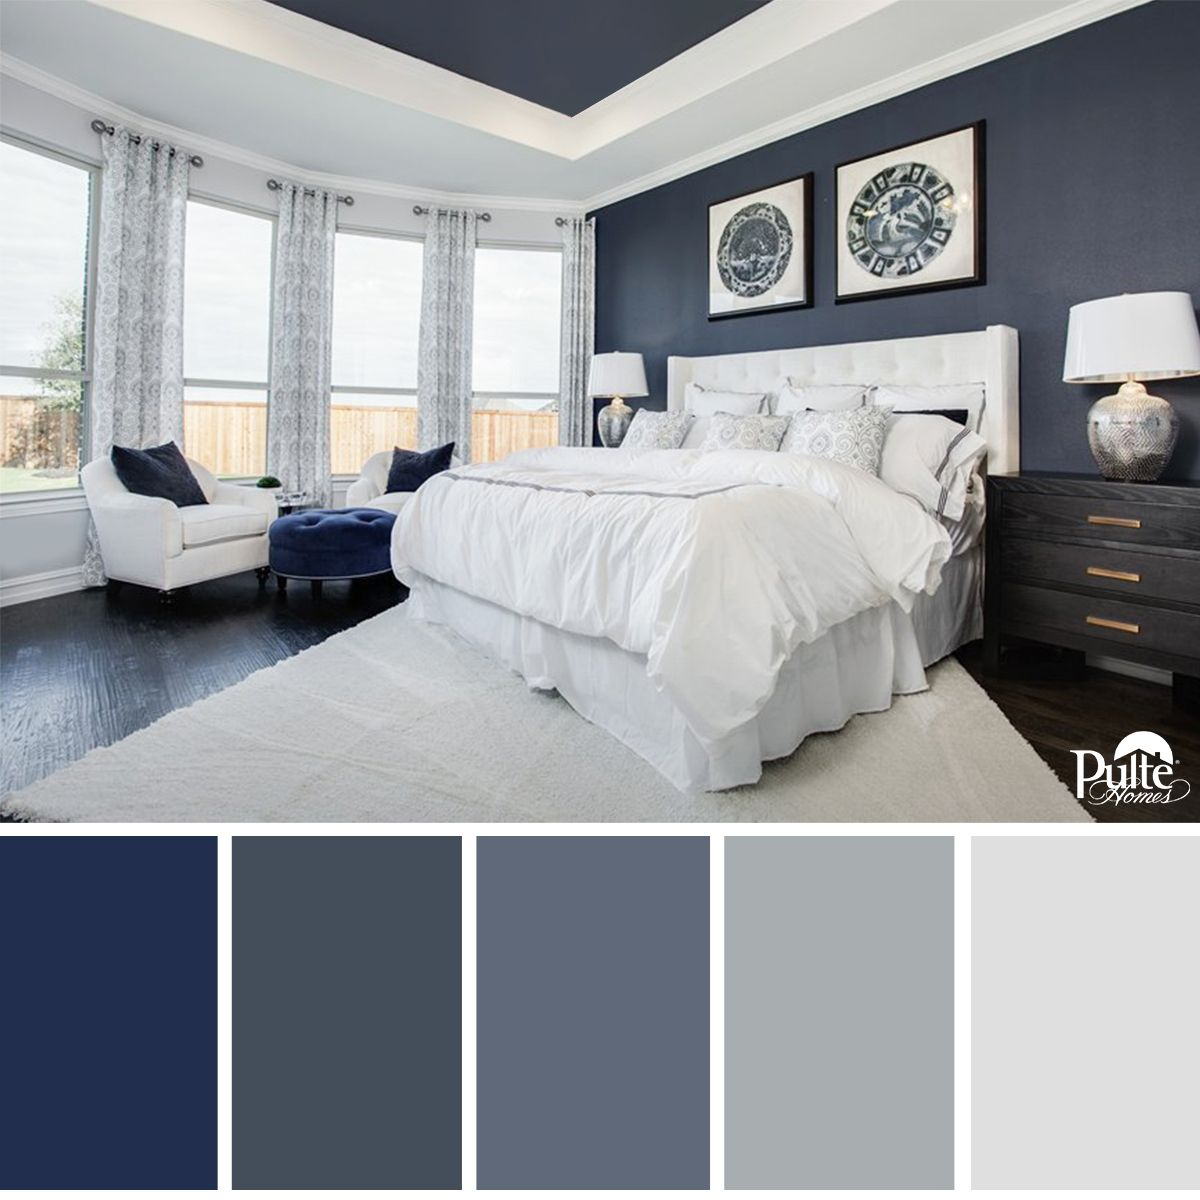 Bedroom Color Ideas With Accent Wall: This Bedroom Design Has The Right Idea. The Rich Blue